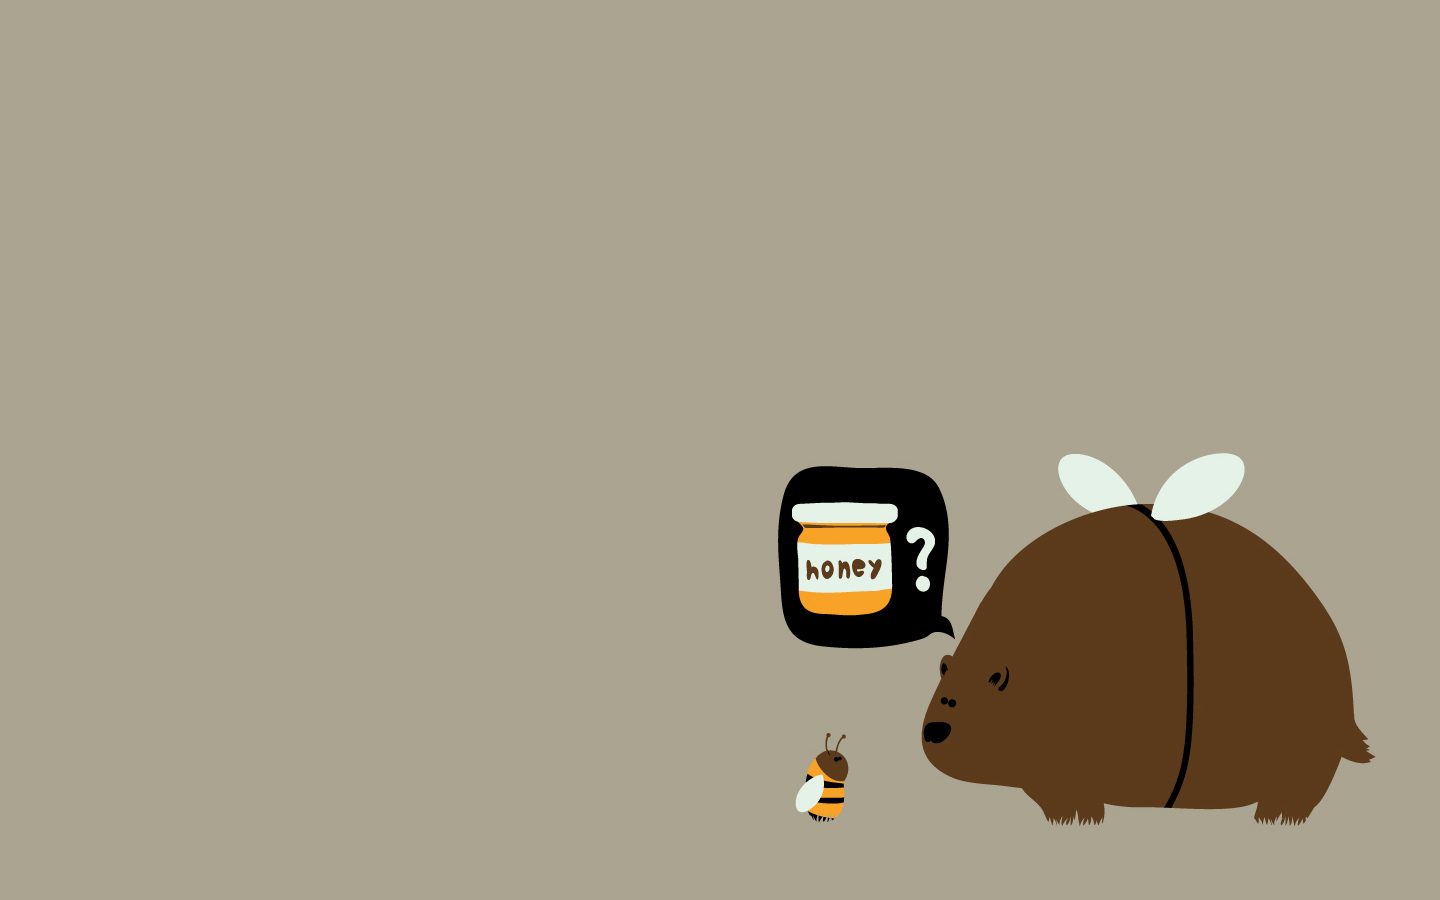 Cute Bees Wallpaper List Nation Wallpapers 33 Minimalist Funny Wallpapers